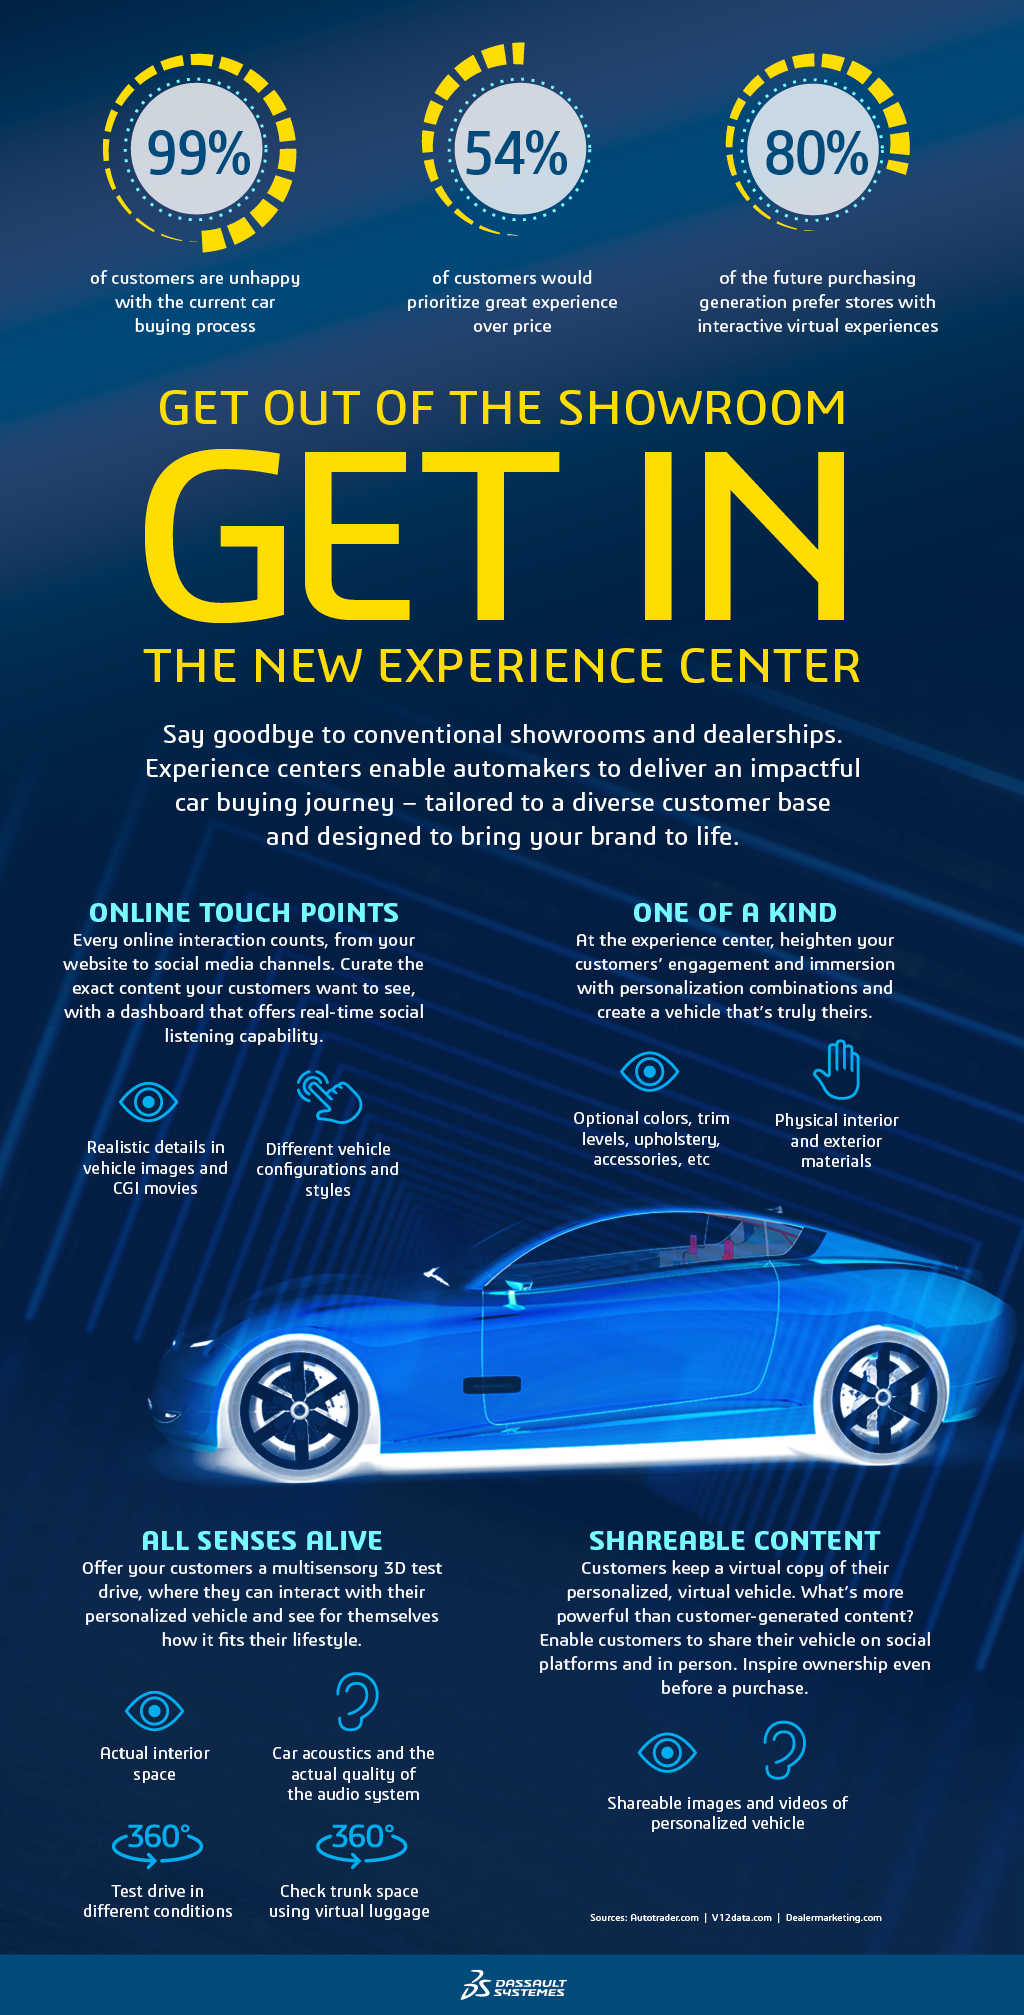 New Car Experience > Design and buy your new vehicle experience > Dassault Systèmes®